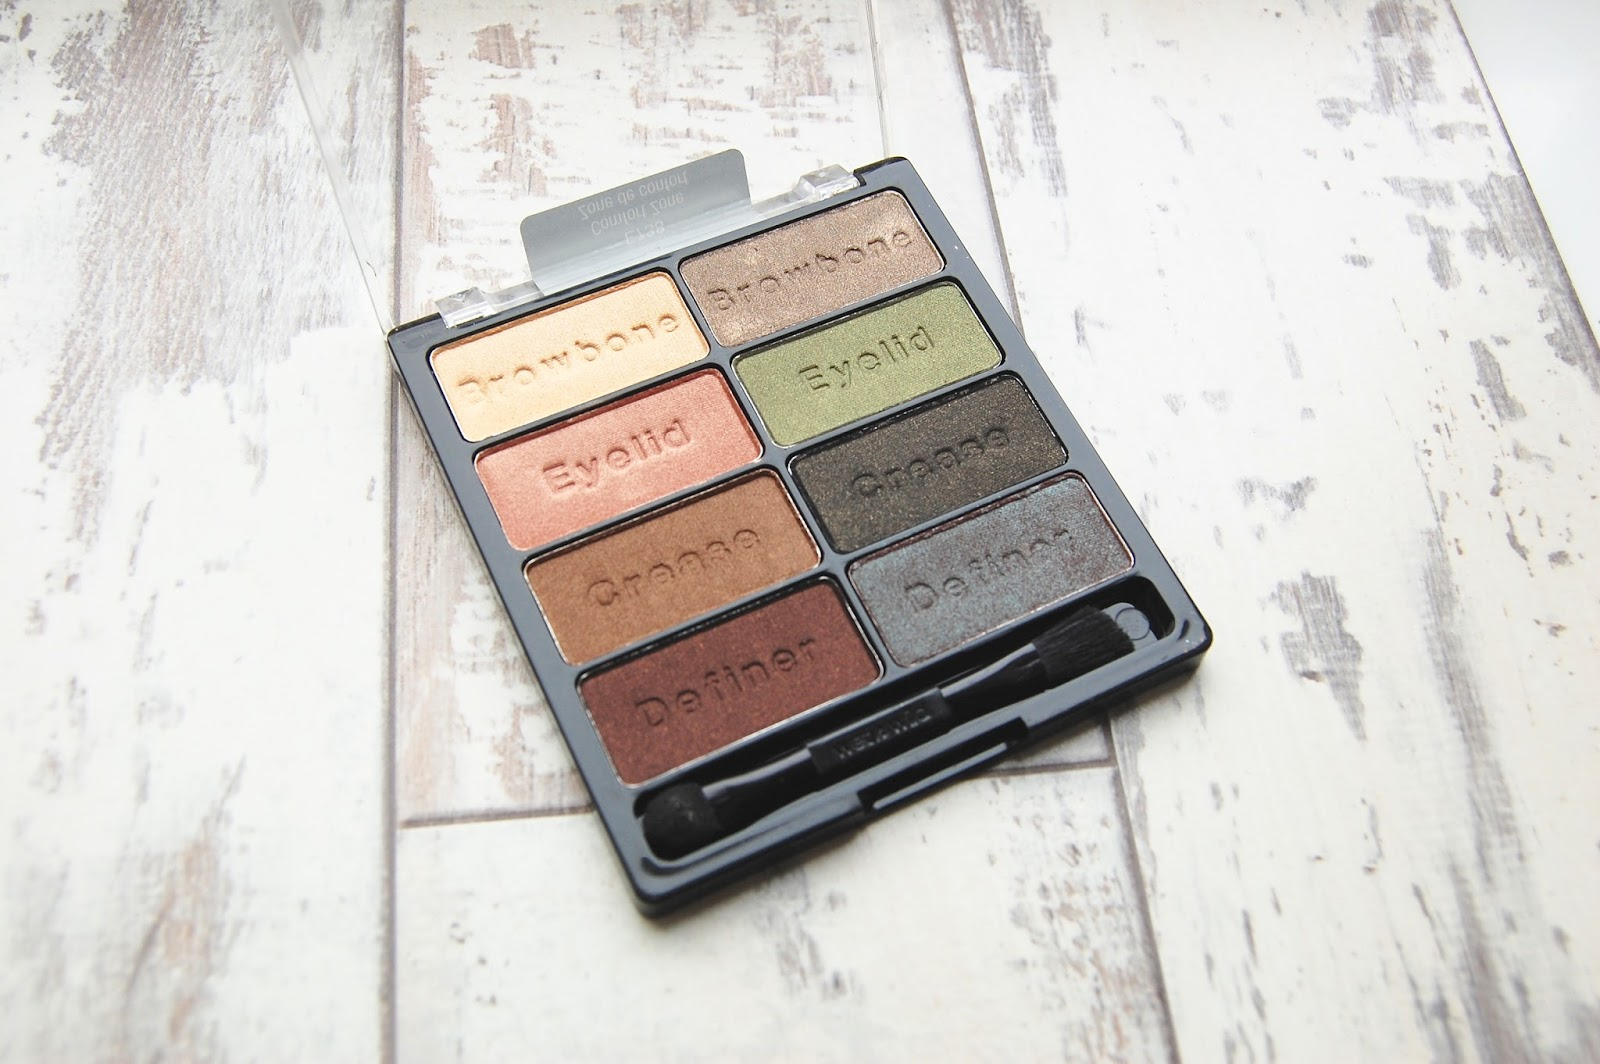 ThroughNewEyes Wet n Wild Comfort Zone palette review and swatches